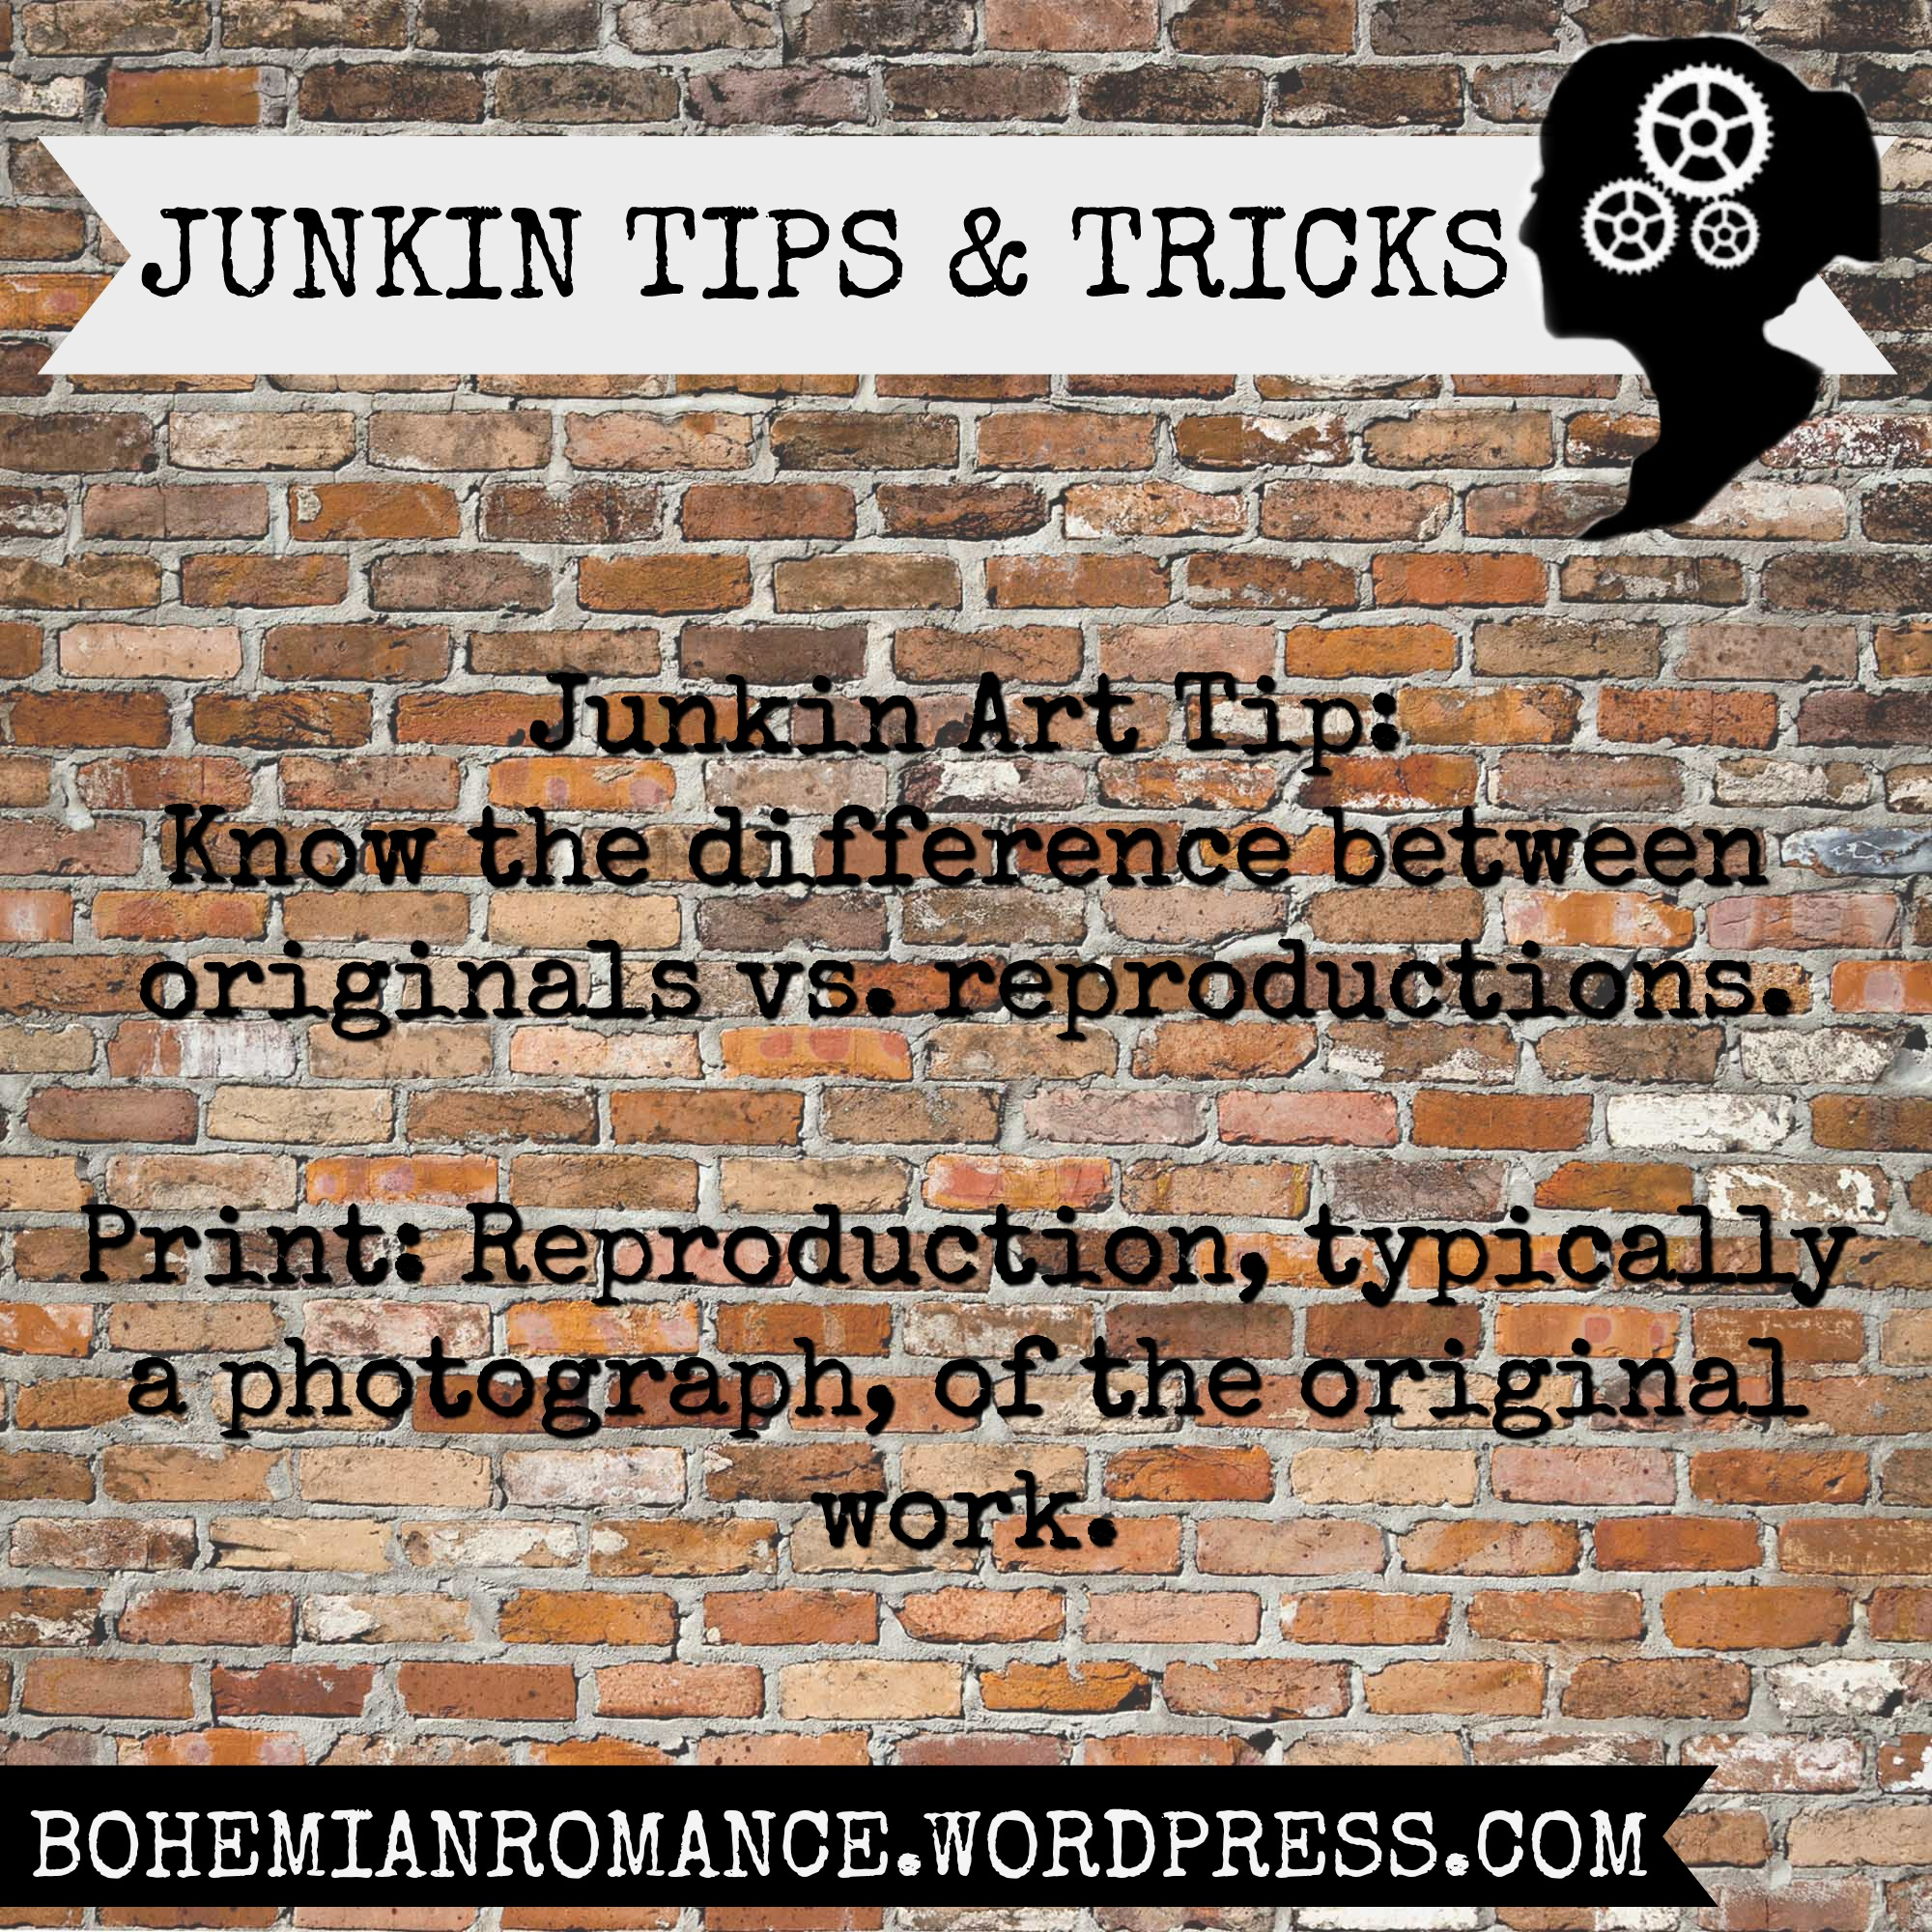 45-junkin-tips-tricks-template